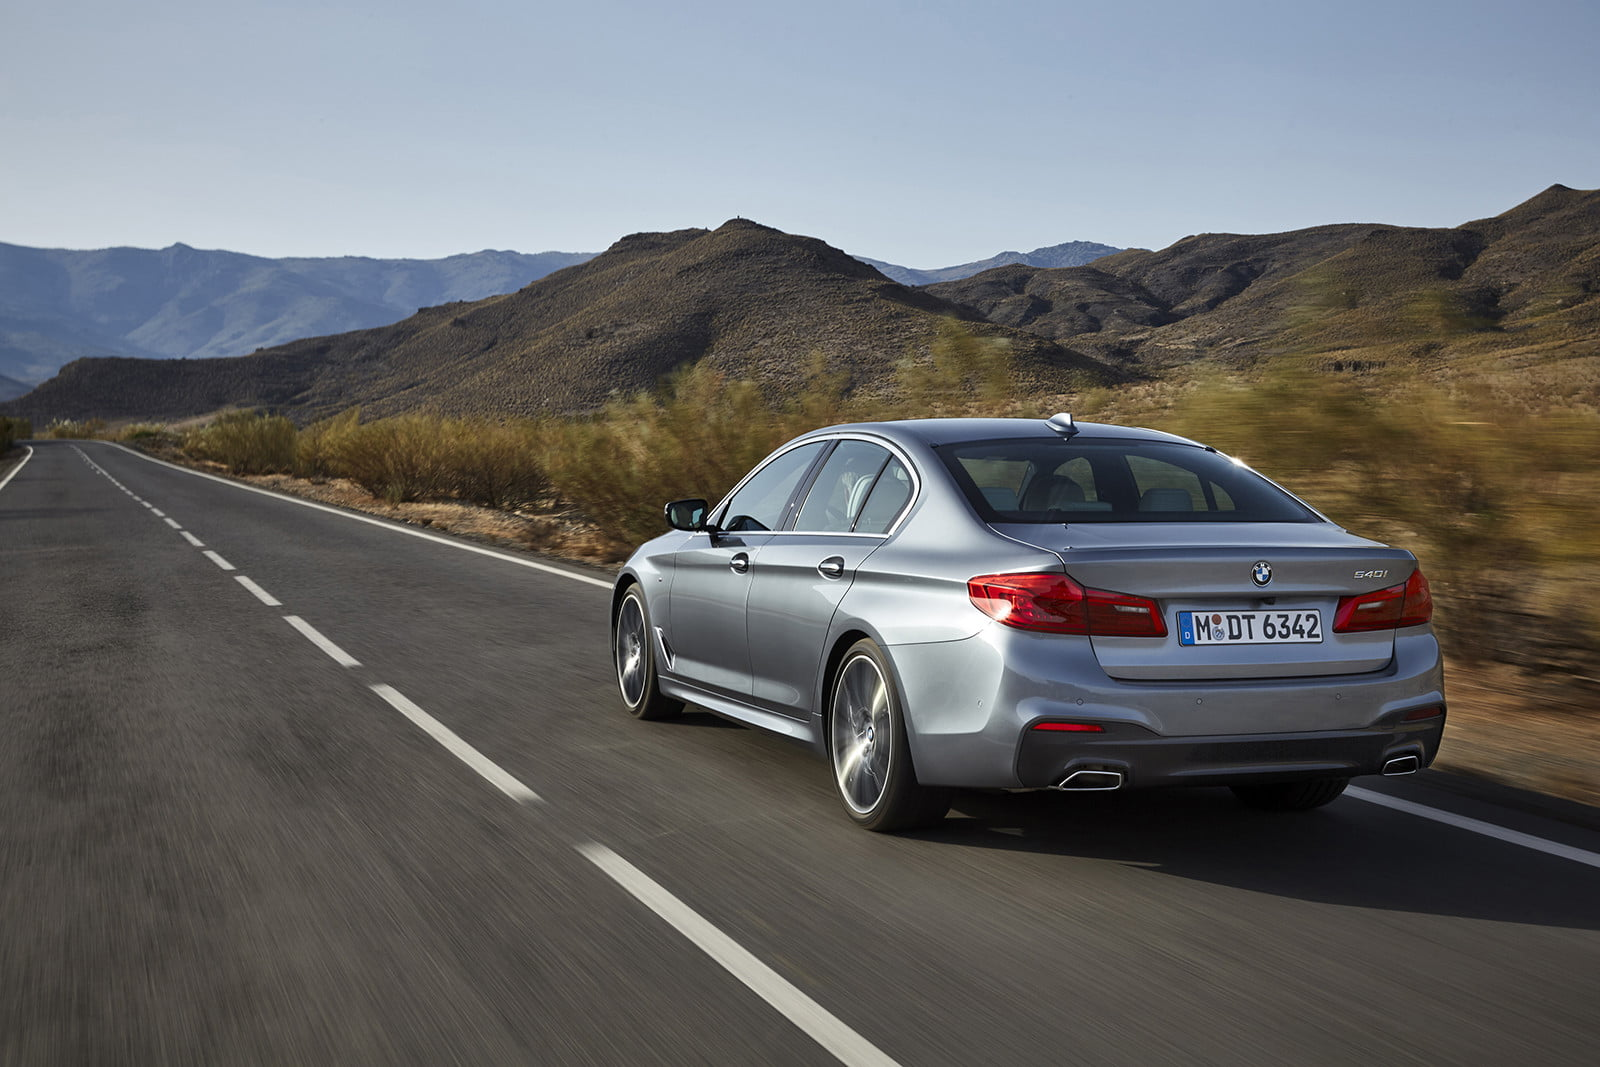 bmw quietly reintroduces diesel powered 5 series to lineup. Black Bedroom Furniture Sets. Home Design Ideas